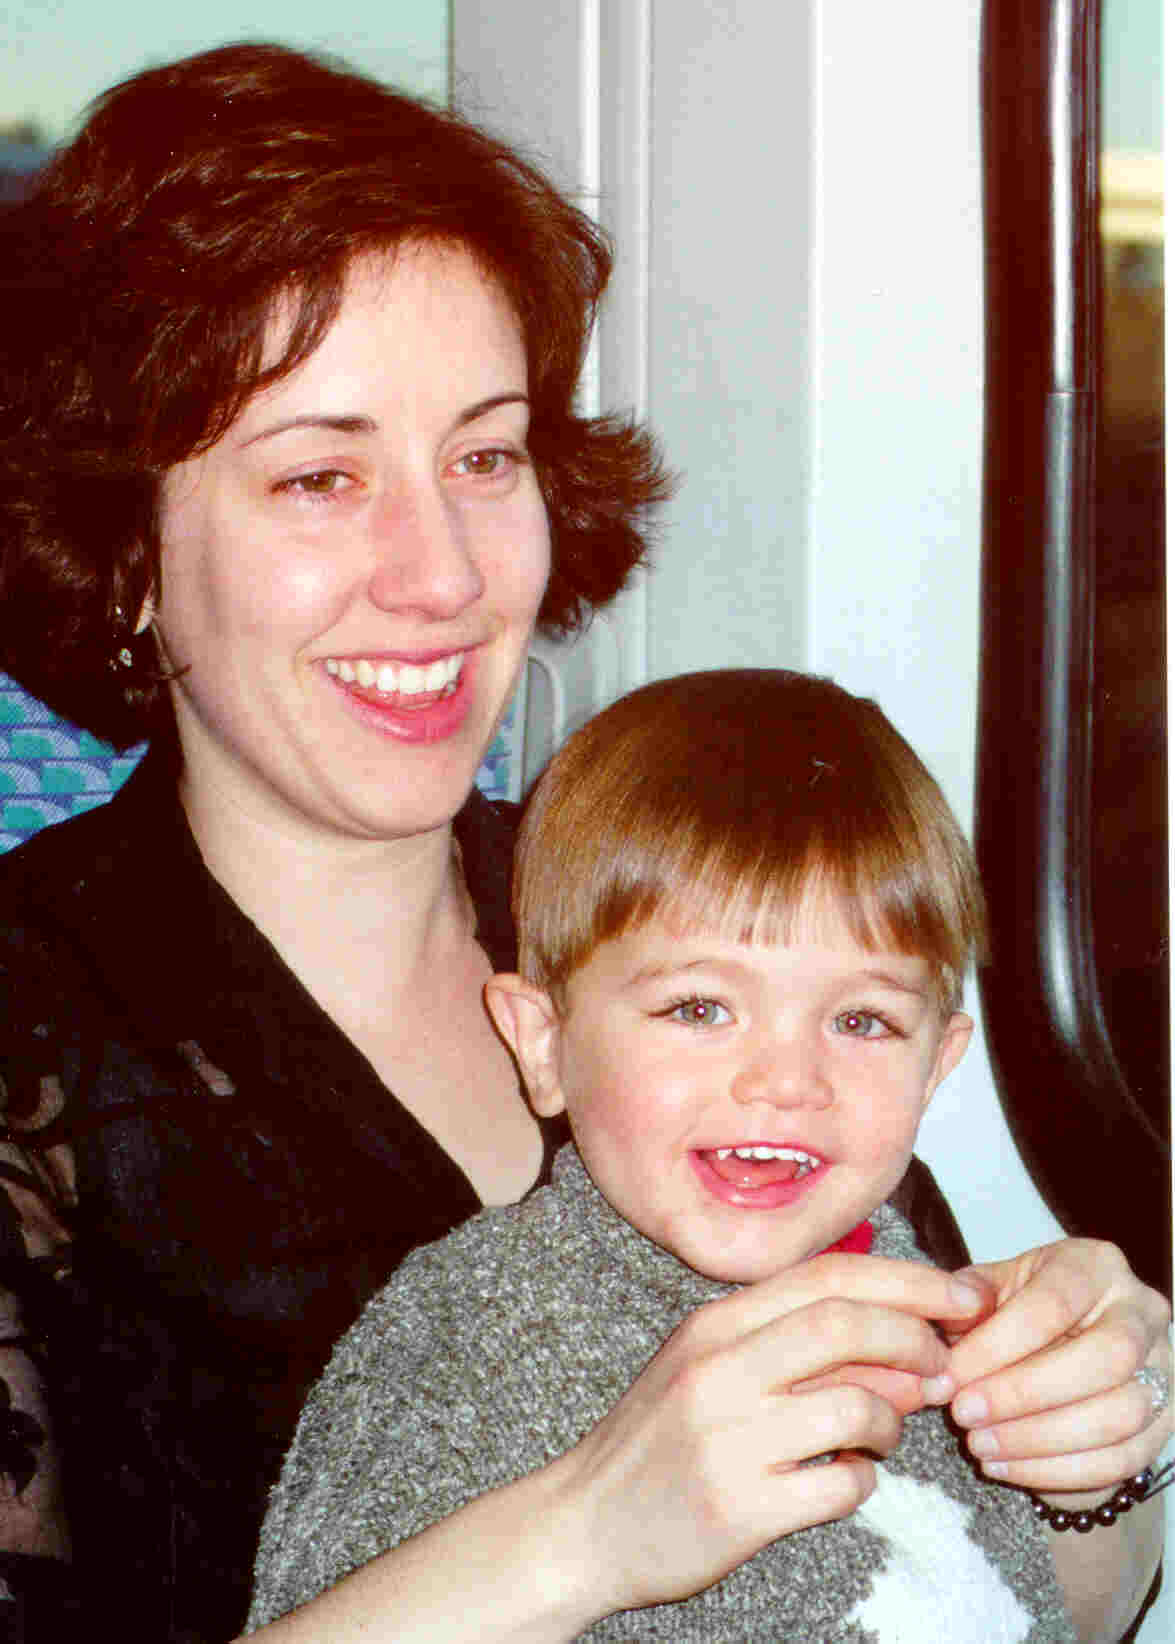 Auntie Eleanor and 2-year-old Niko